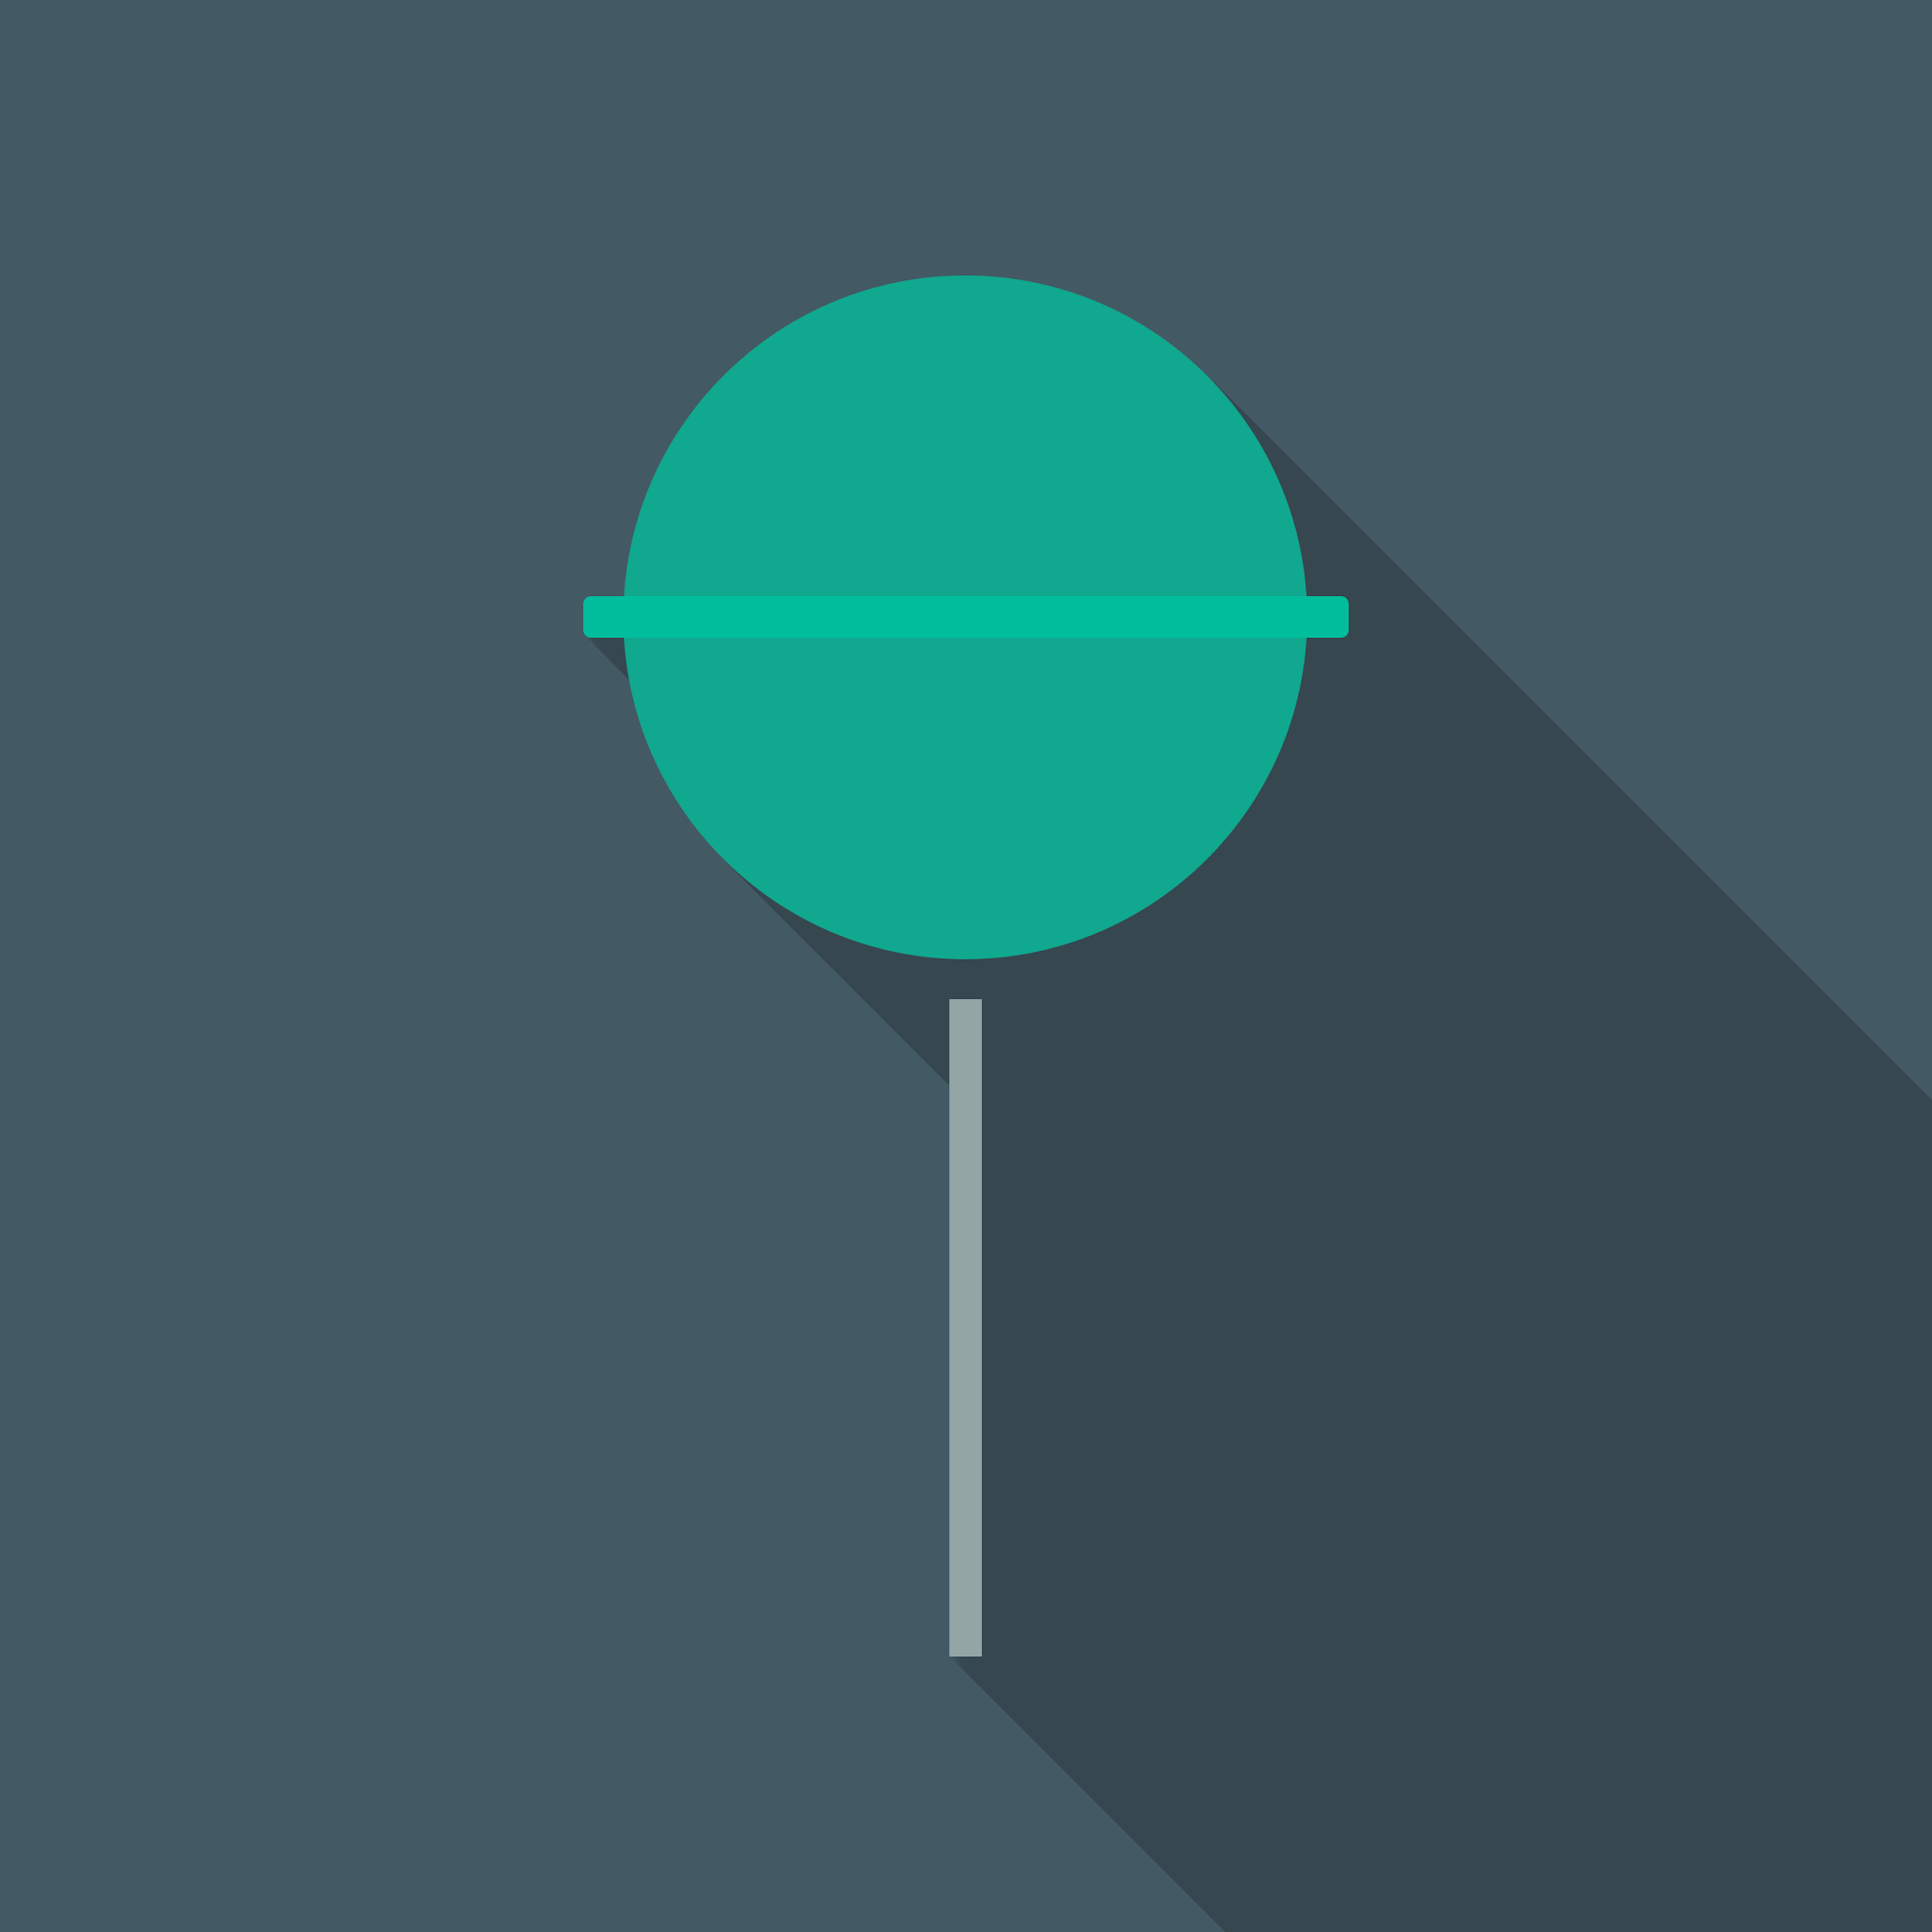 android lollipop tap to see more android wallpapers mobile9